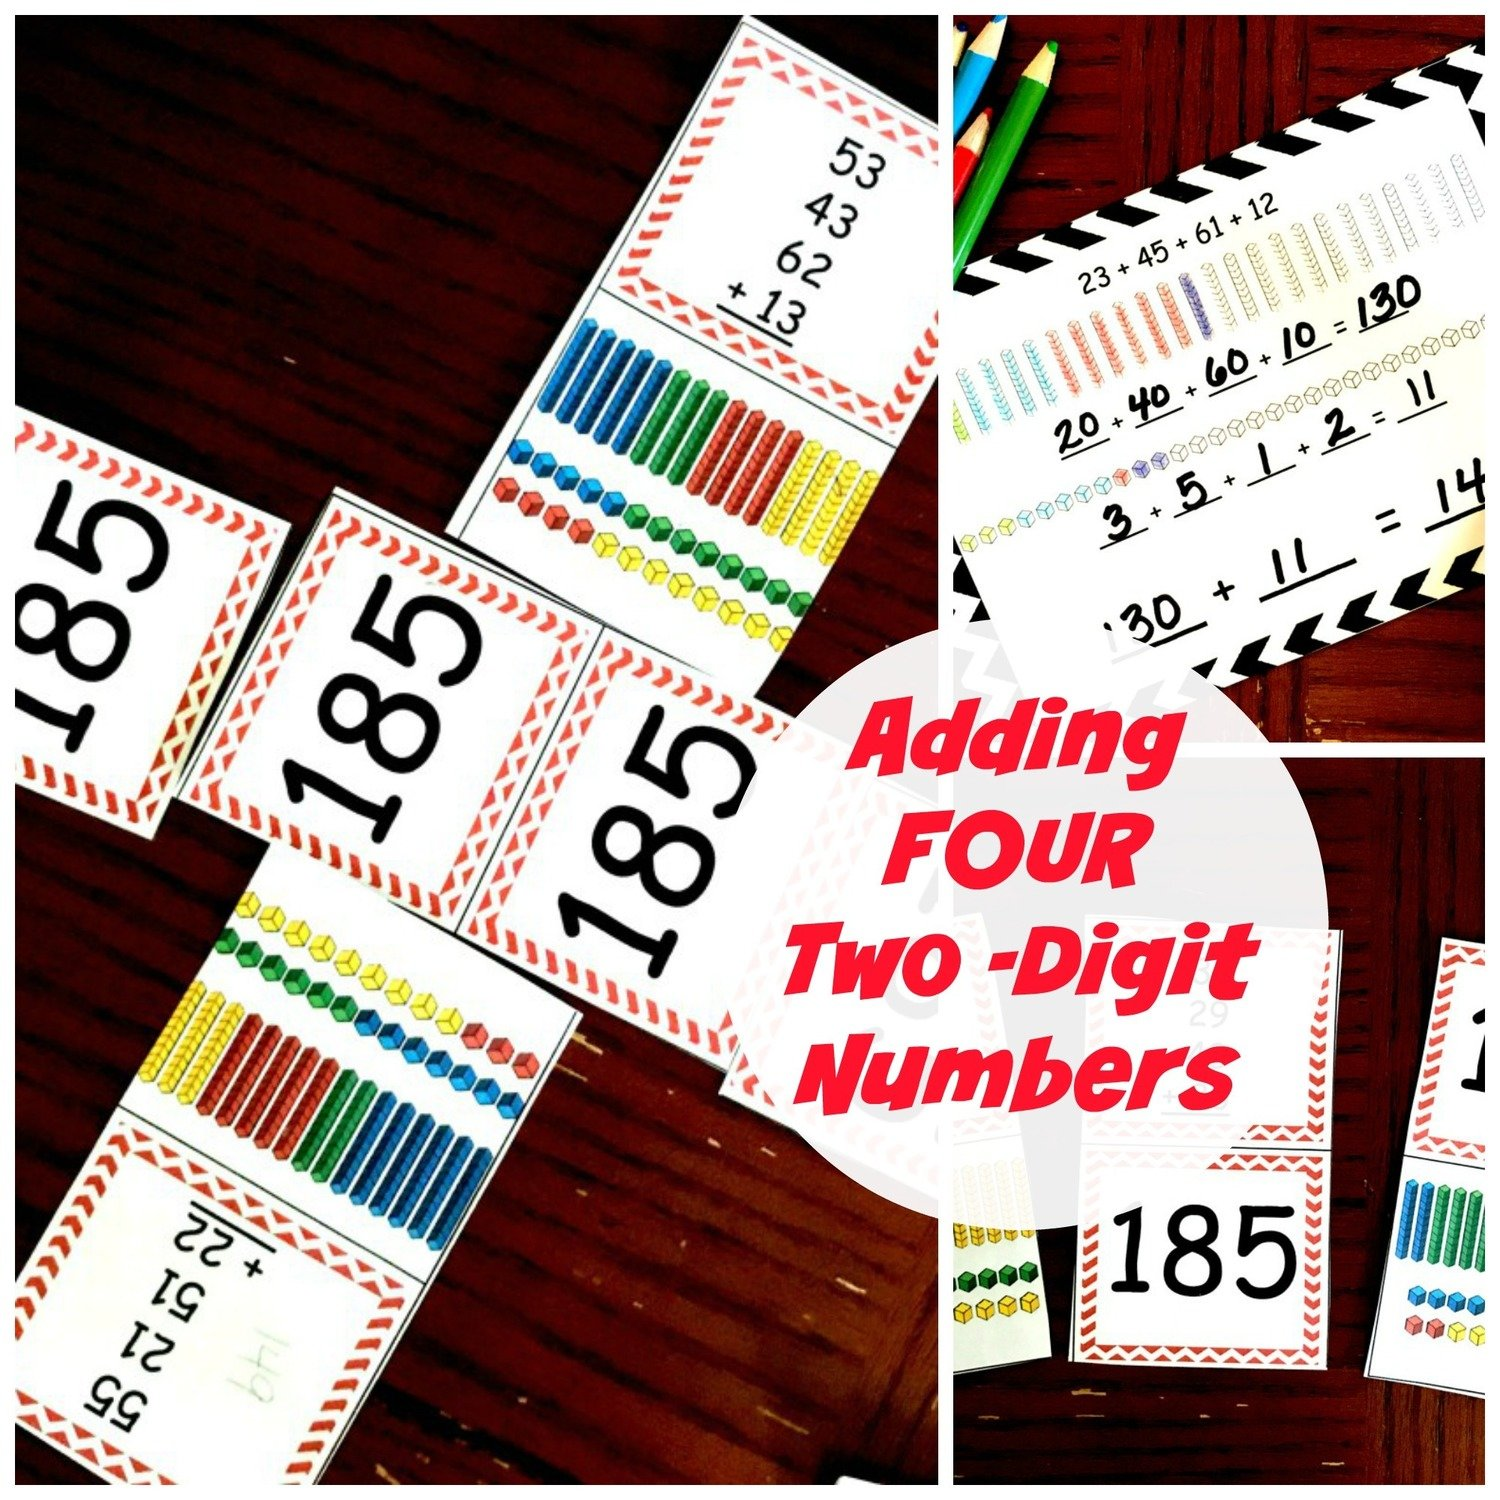 Adding 4 Two-Digit Numbers- Task Cards and Game